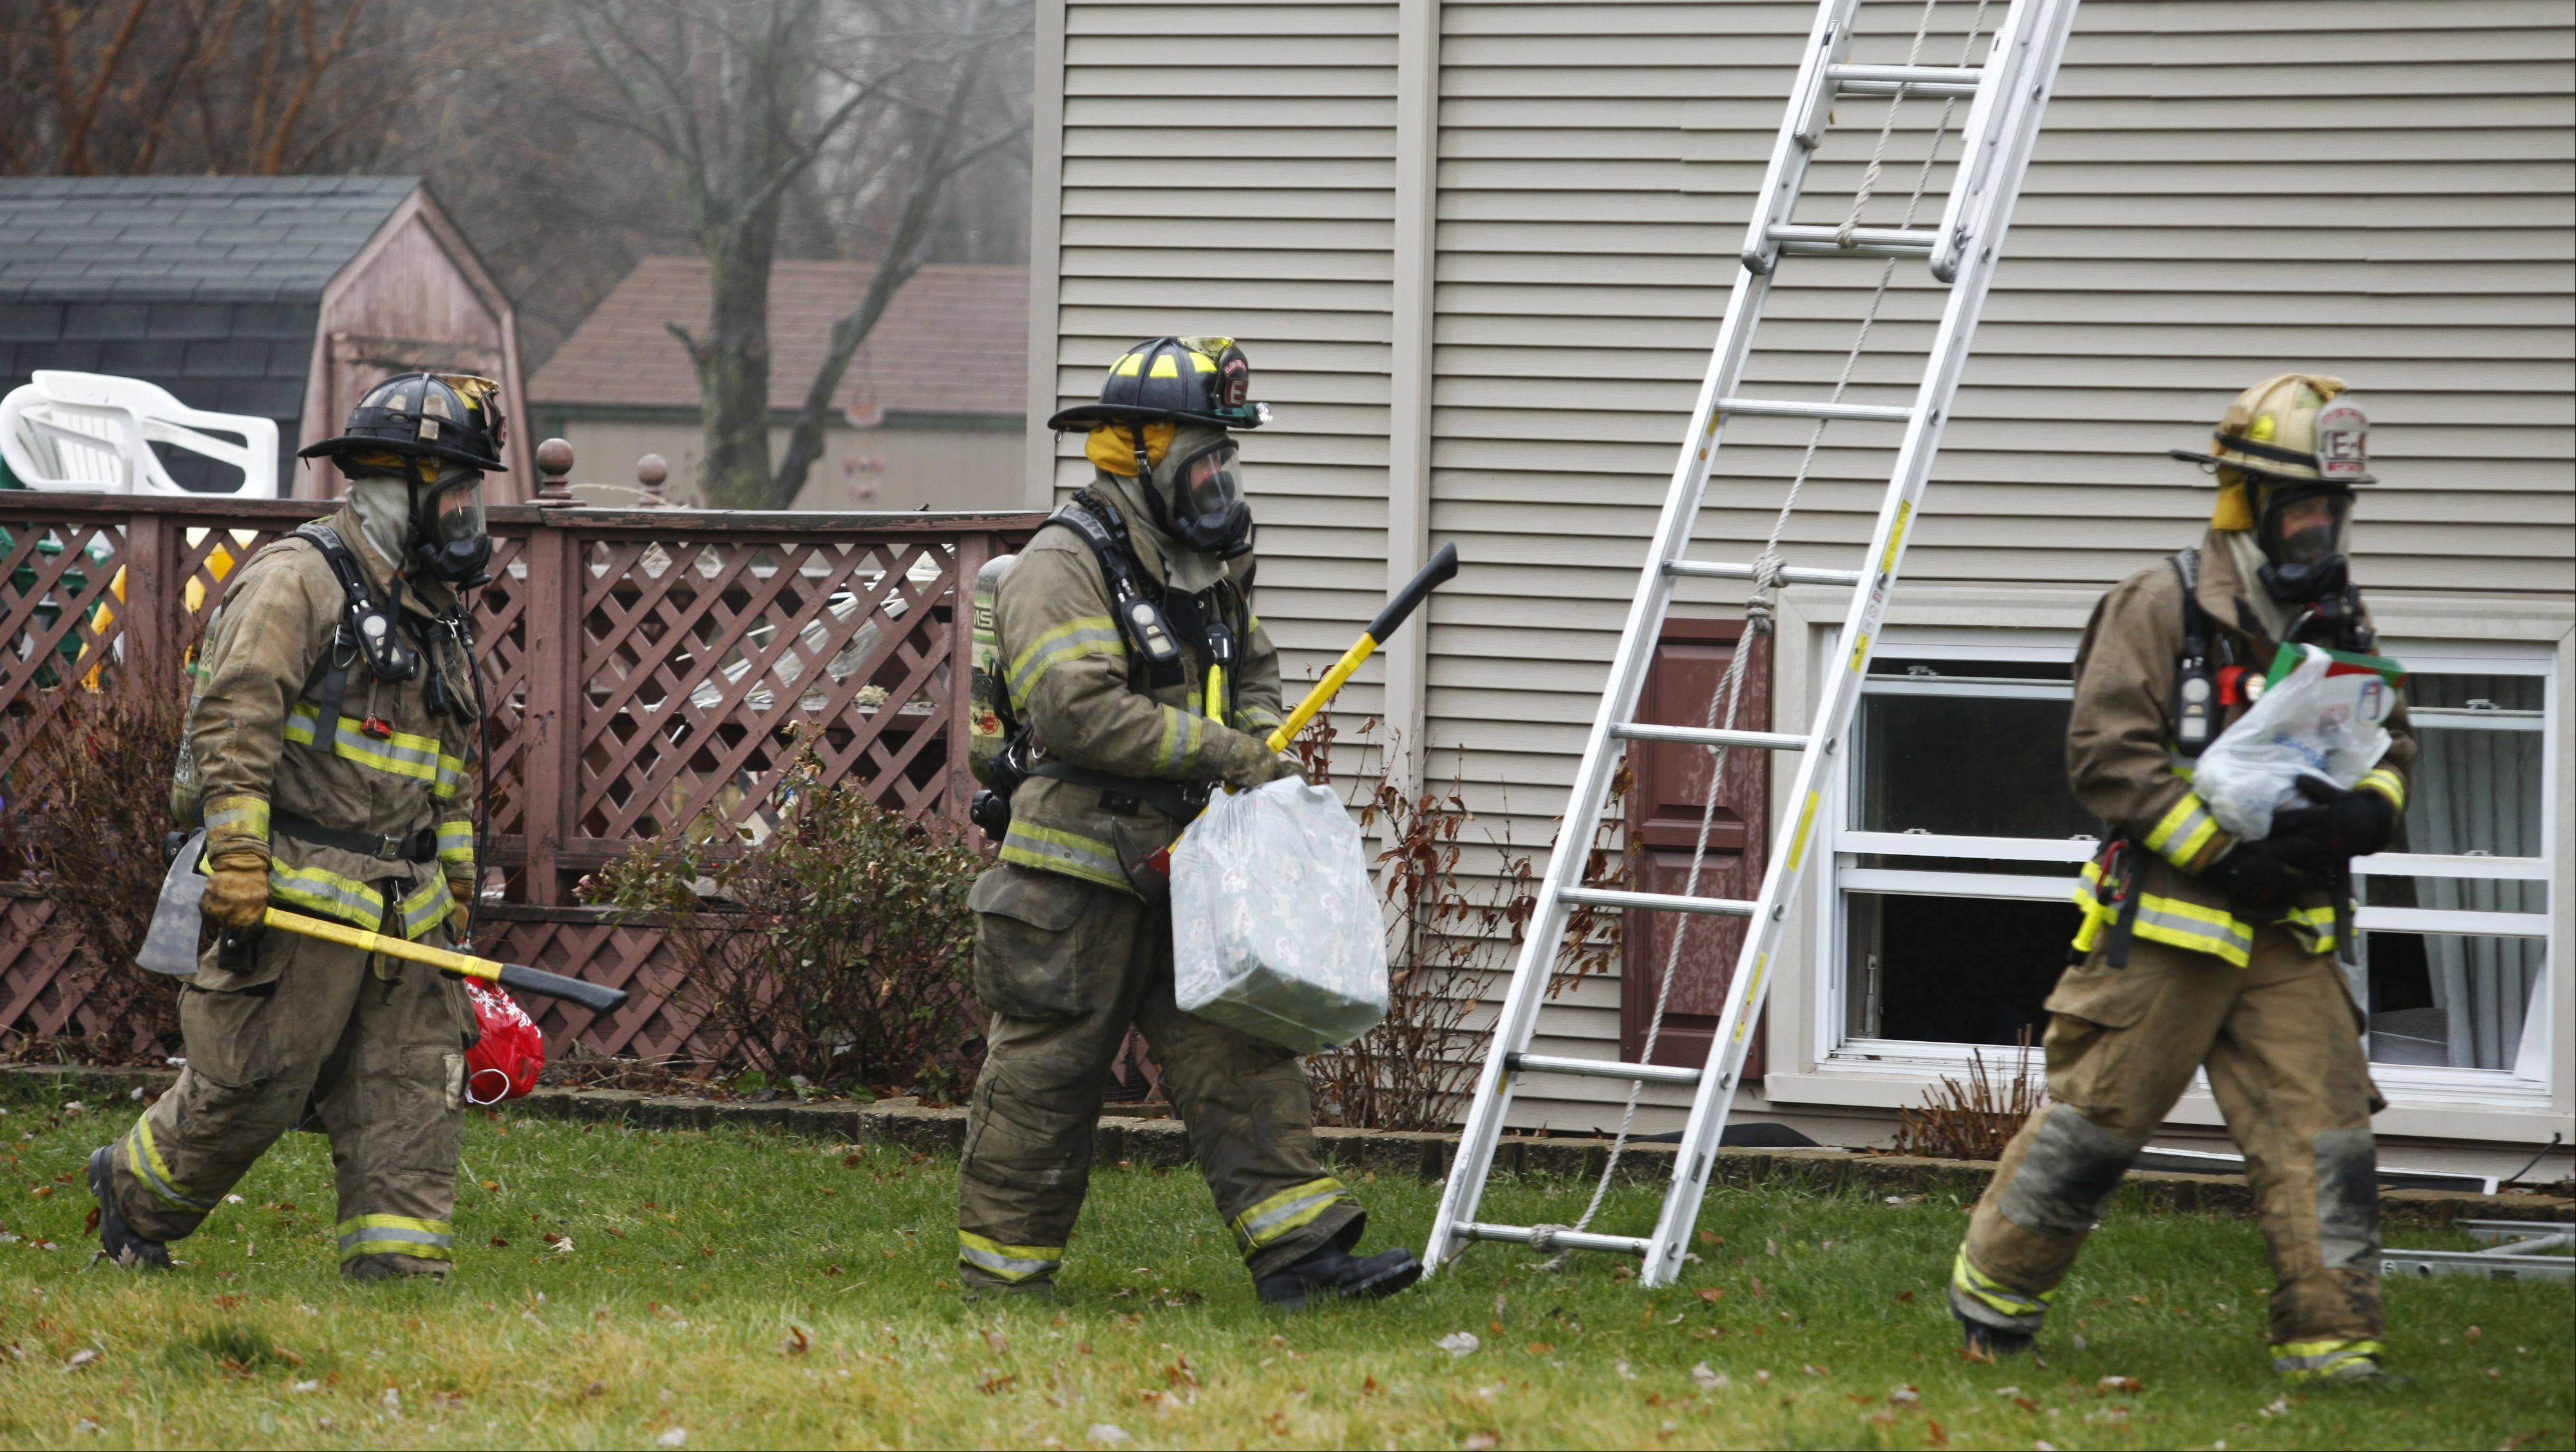 Elgin firefighters carry gift packages which they were able to salvage from the home after a Christmas tree caught fire.